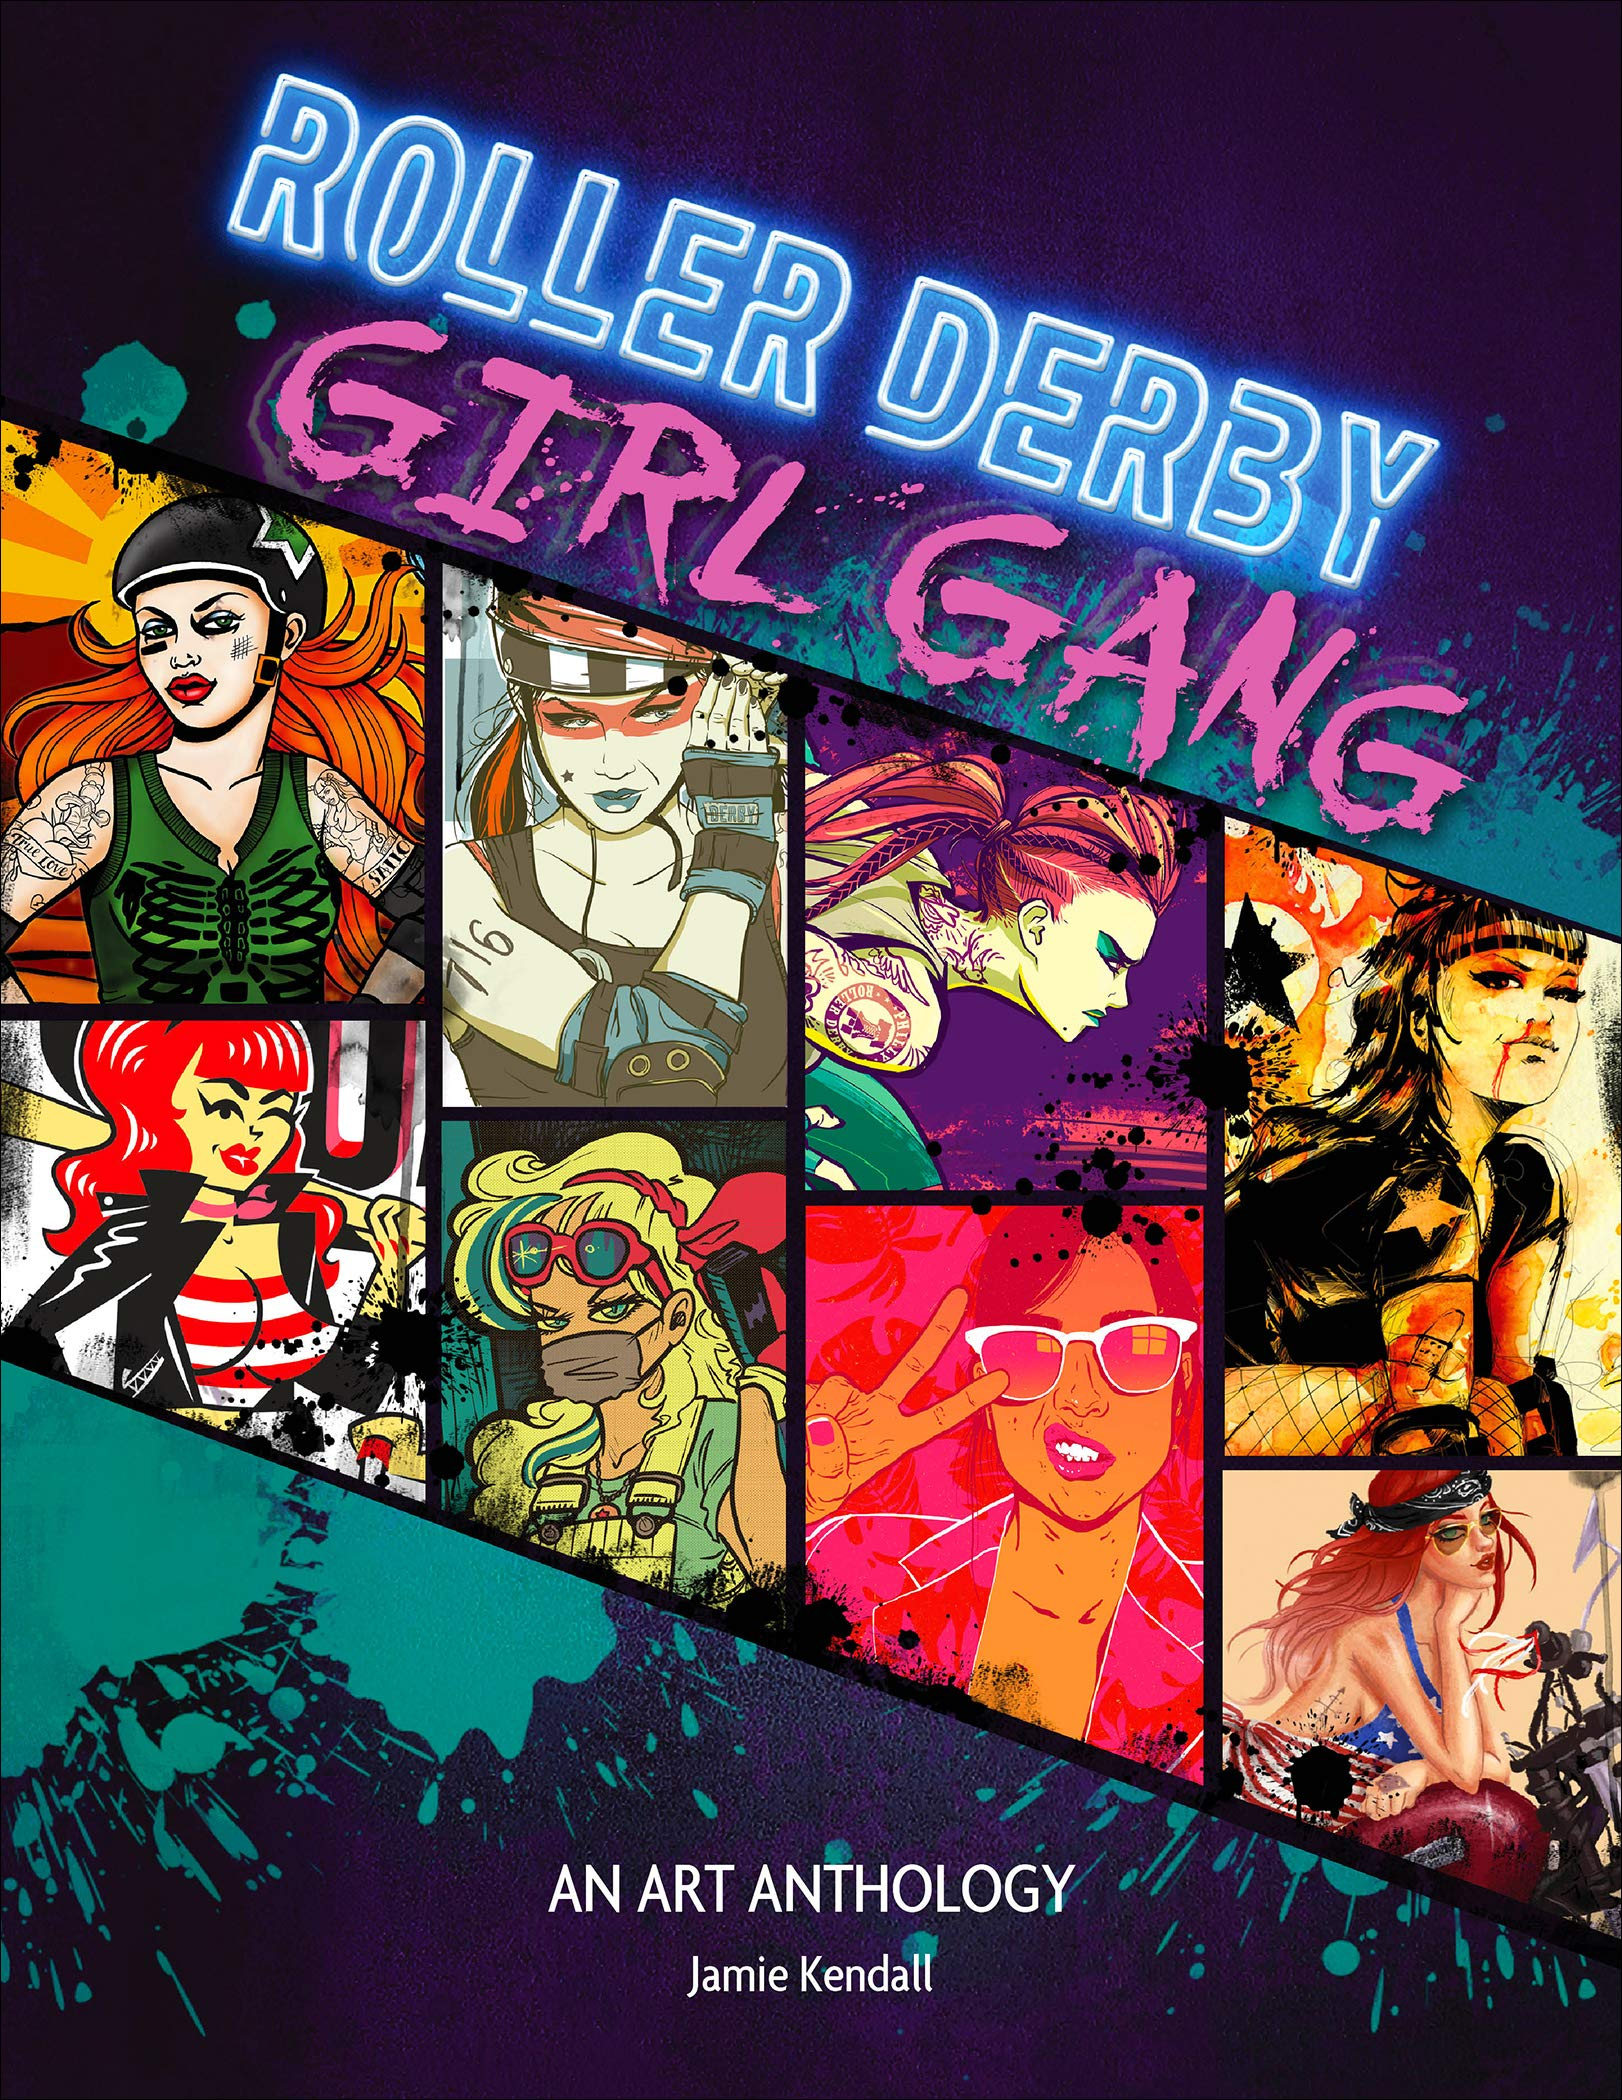 Roller Derby/Girl Gang: An Art Anthology